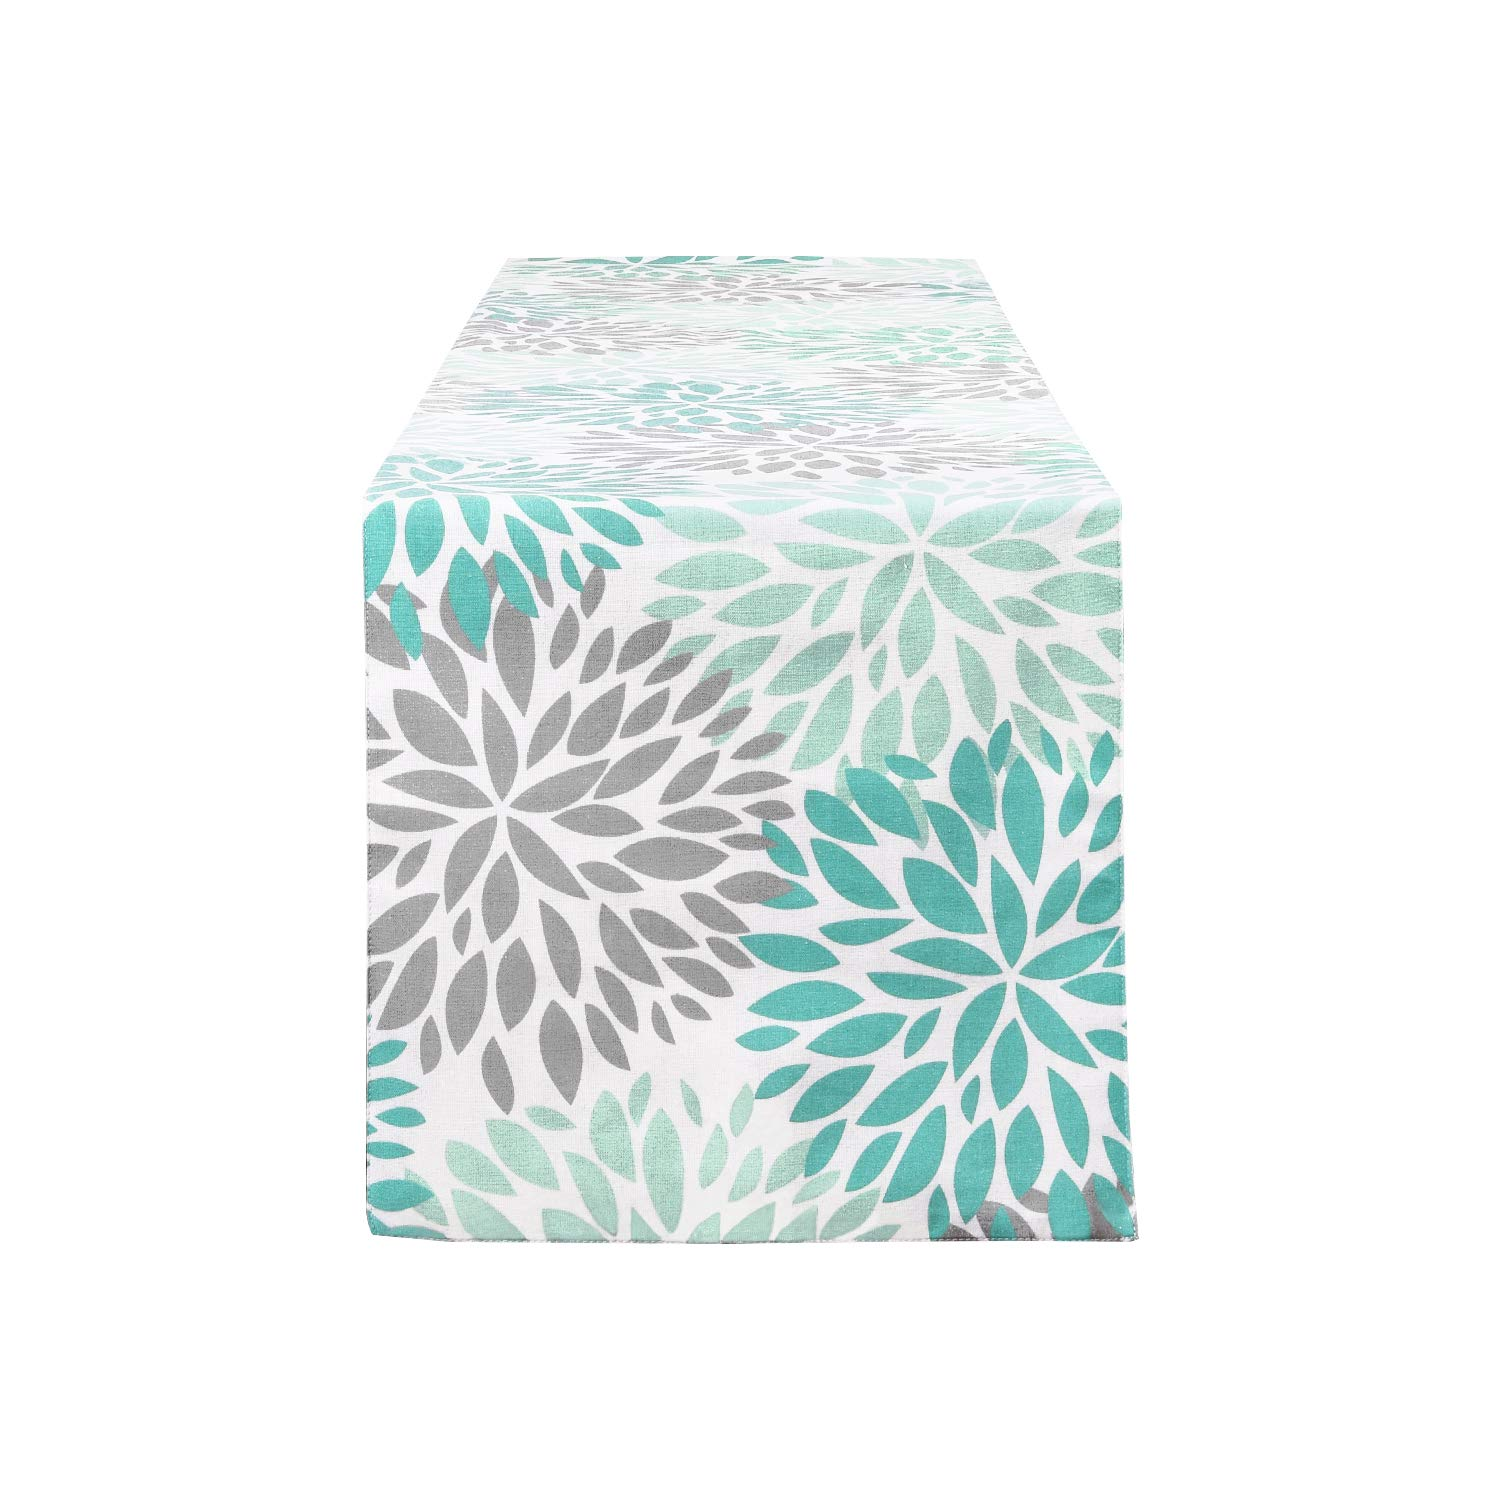 Smurfs Yingda Dahlia Pinnata Table Runner Green and Gray Print Flower Table Runners for Catering Events, Dinner Parties, Wedding, Spring Holiday, Indoor and Outdoor Parties